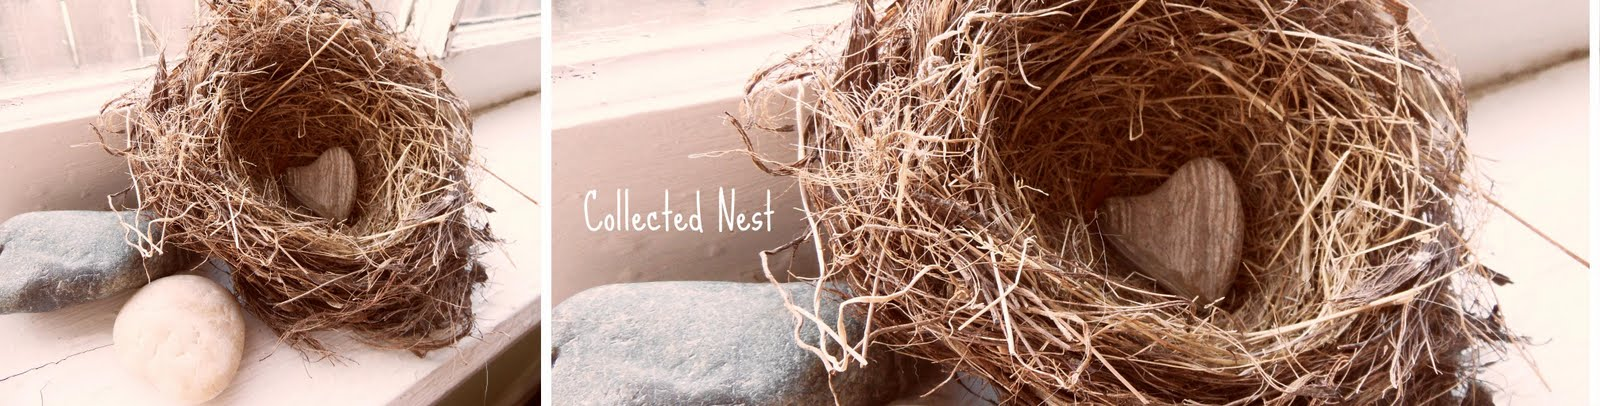 Collected Nest